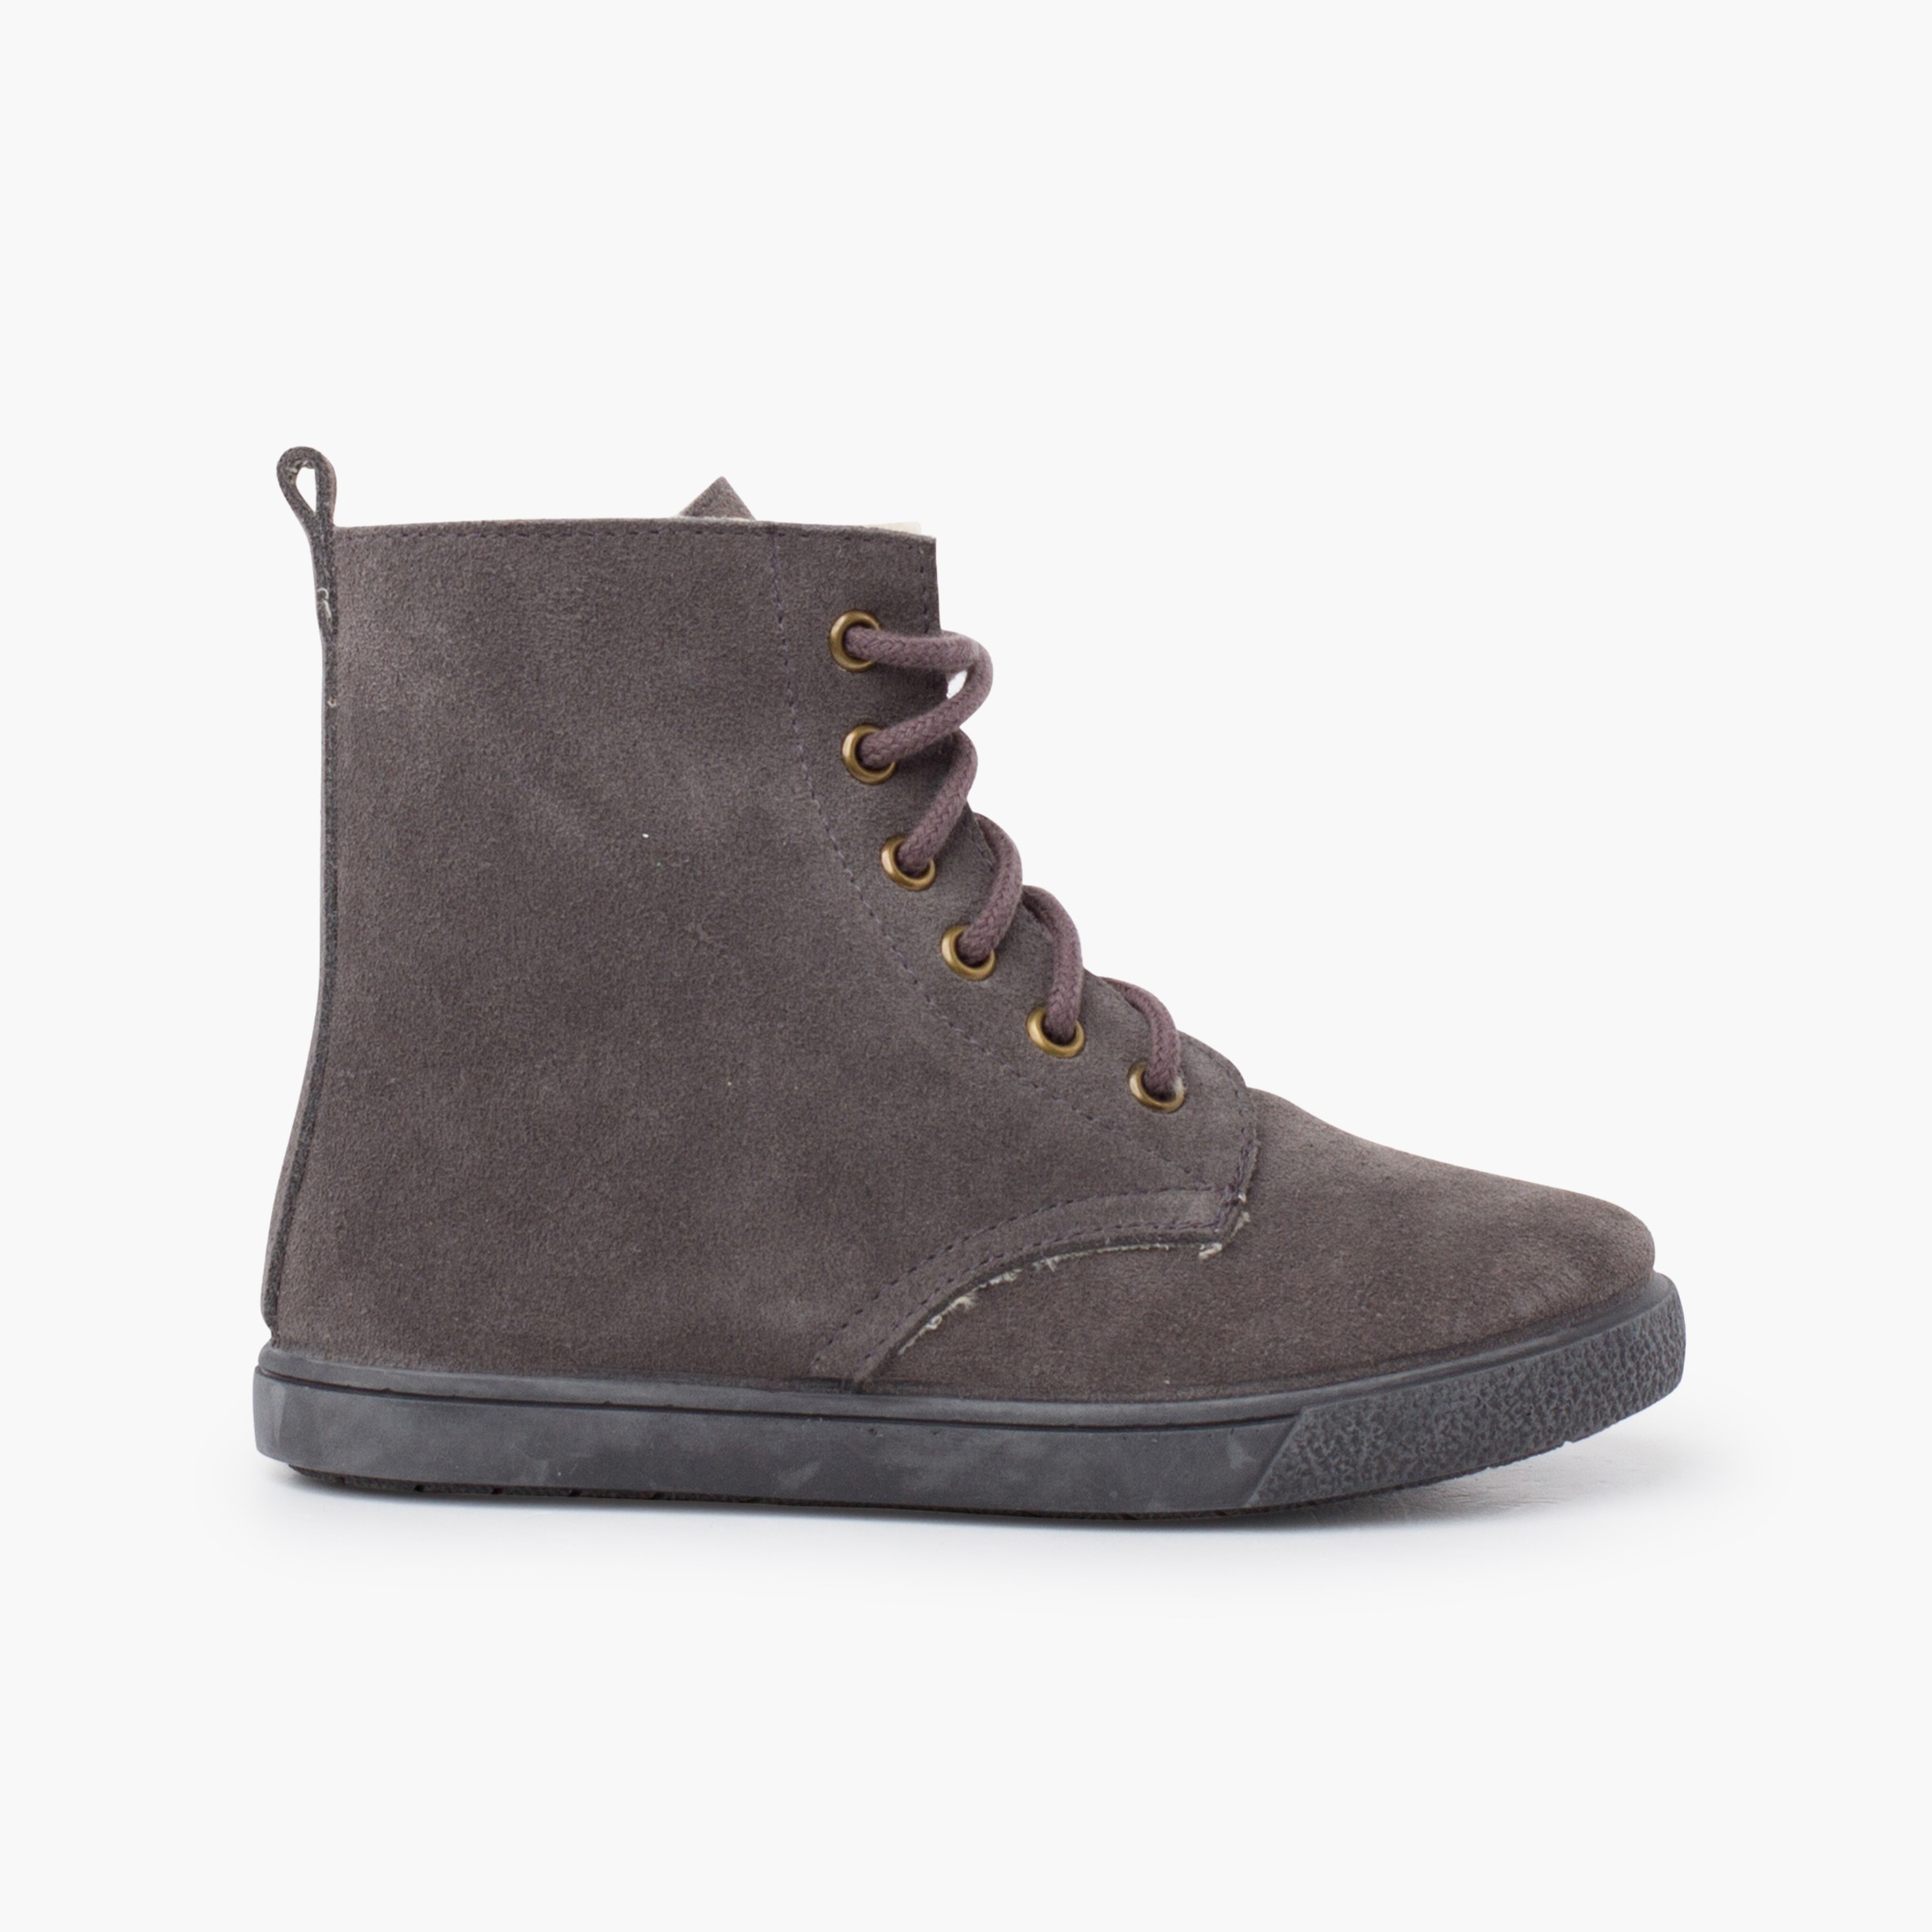 Shearling boot with side zipper laces